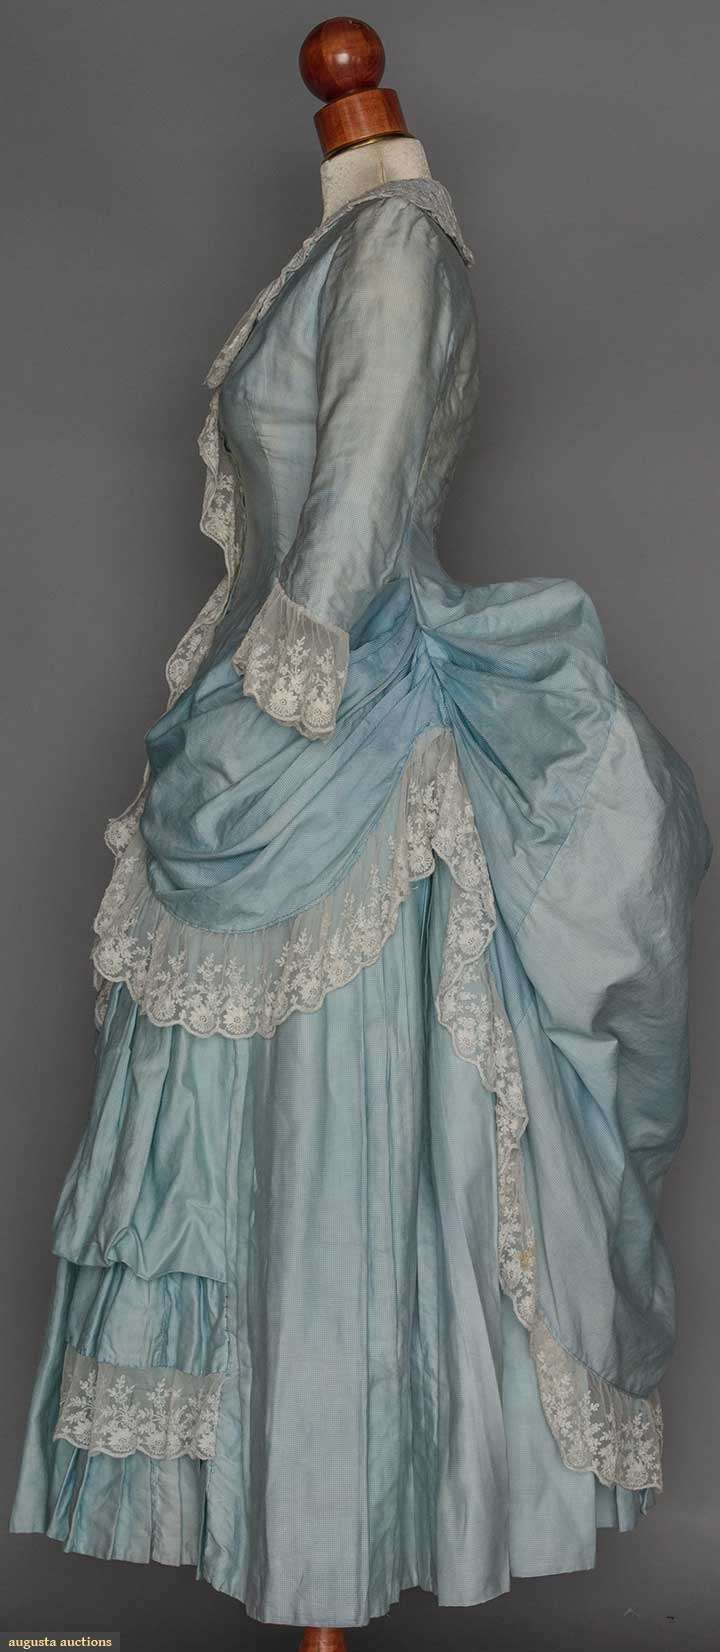 Two Young Ladies' Bustle Dresses, 1880, Augusta Auctions, November 11, 2015 NYC